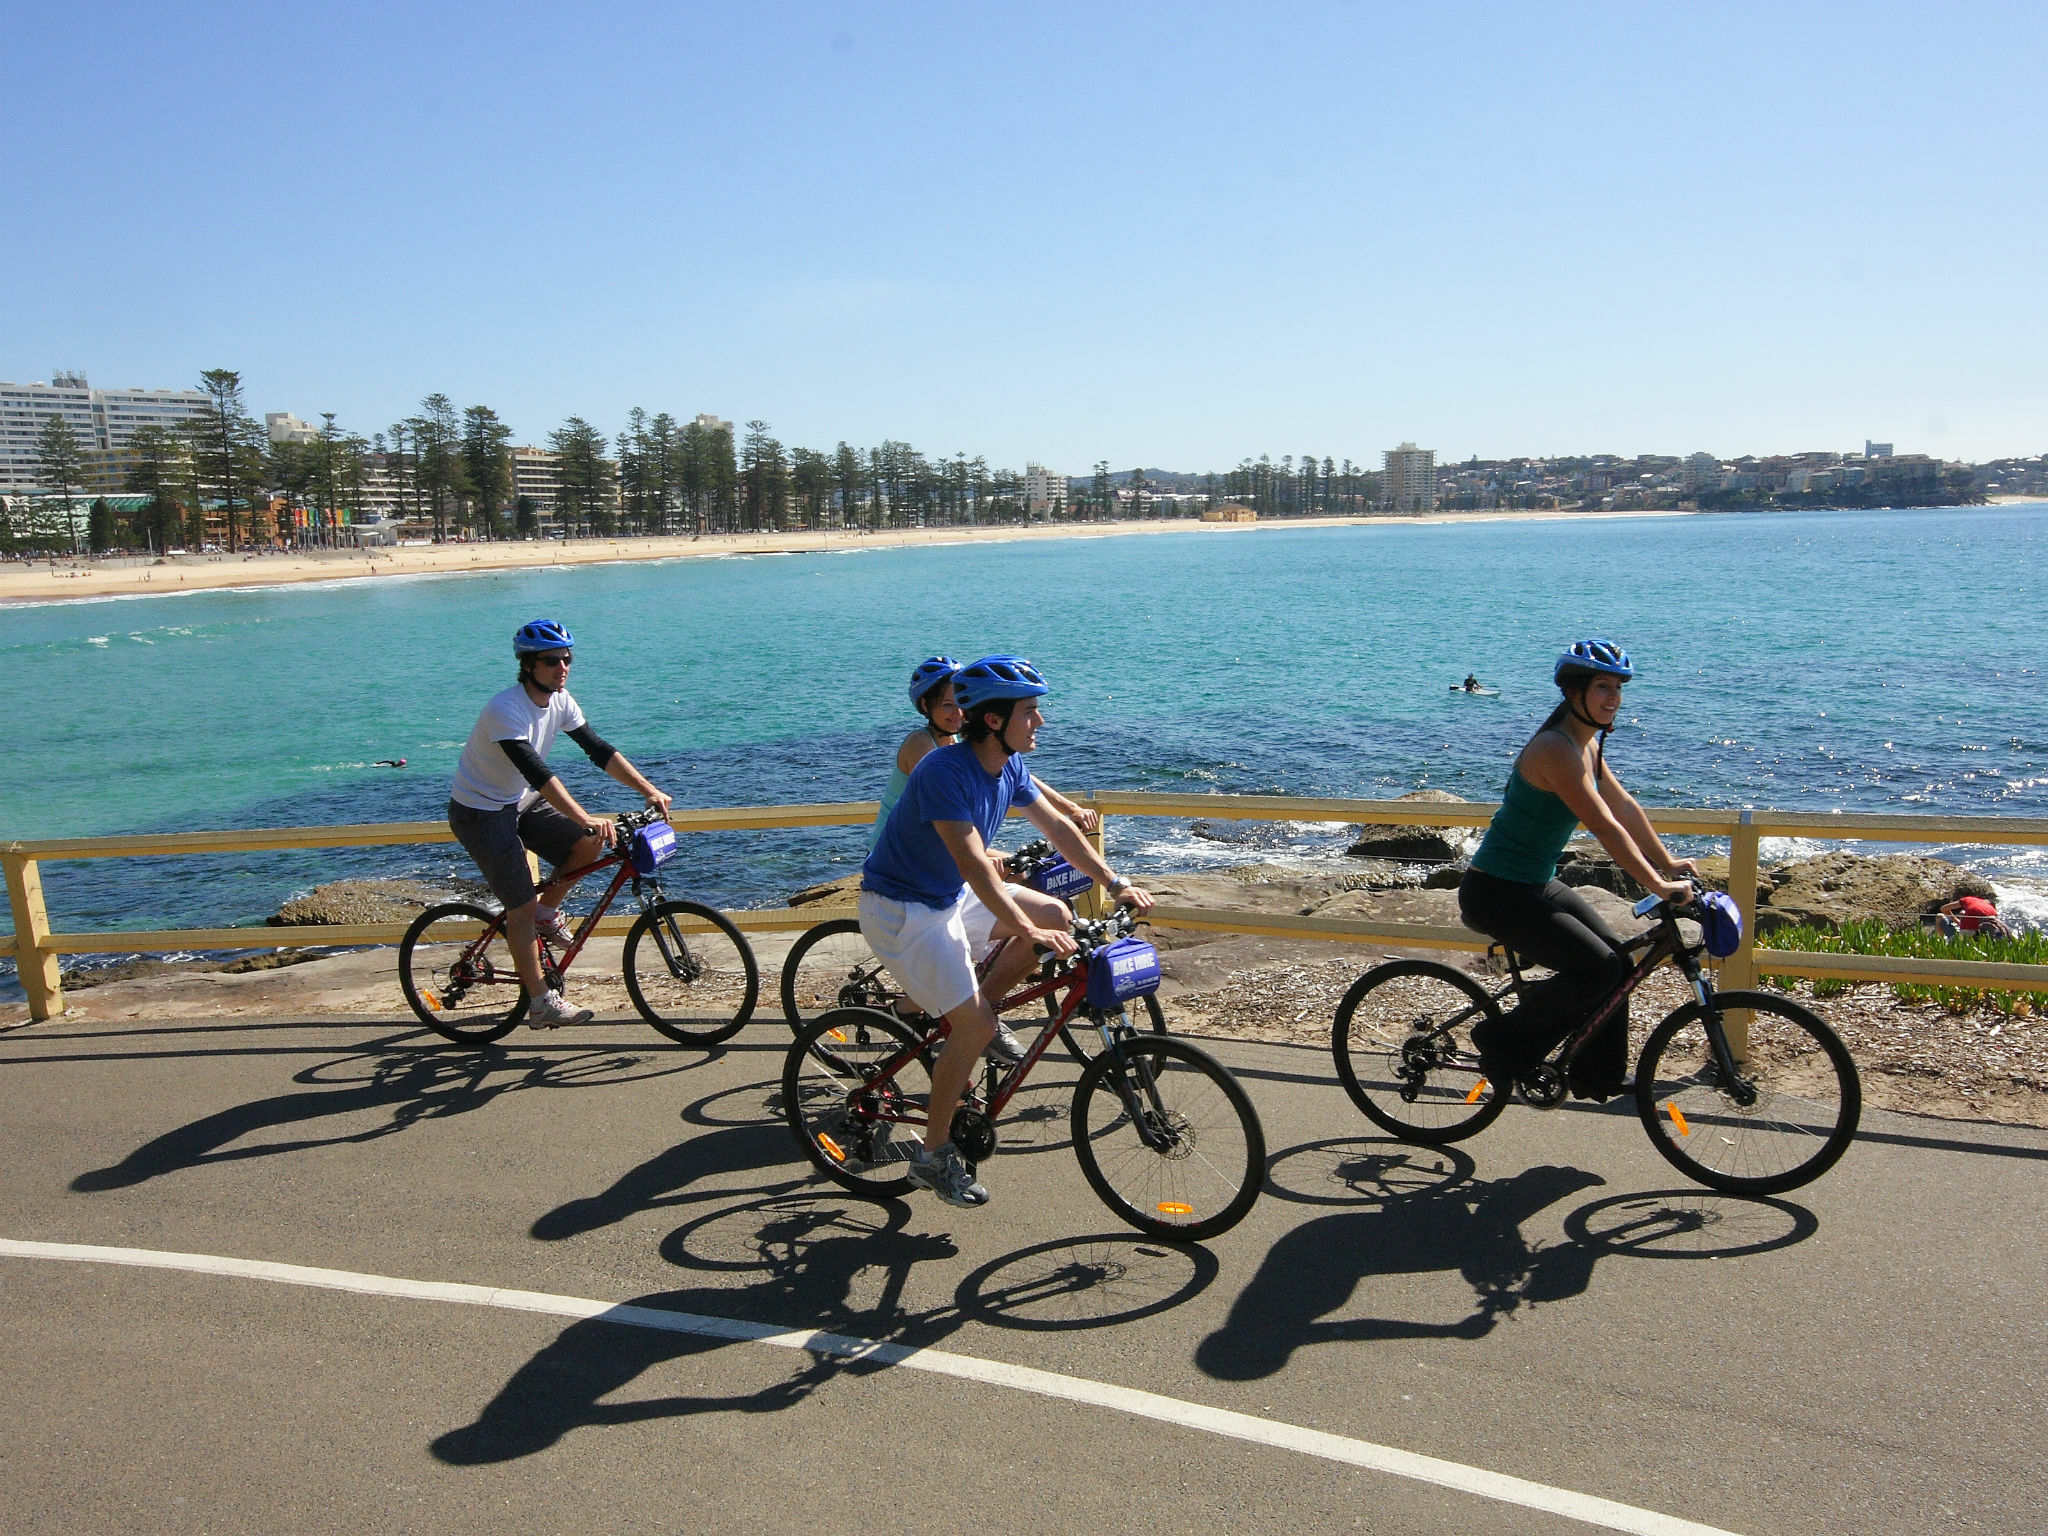 Group of people on a self-guided tour of Manly on bikes